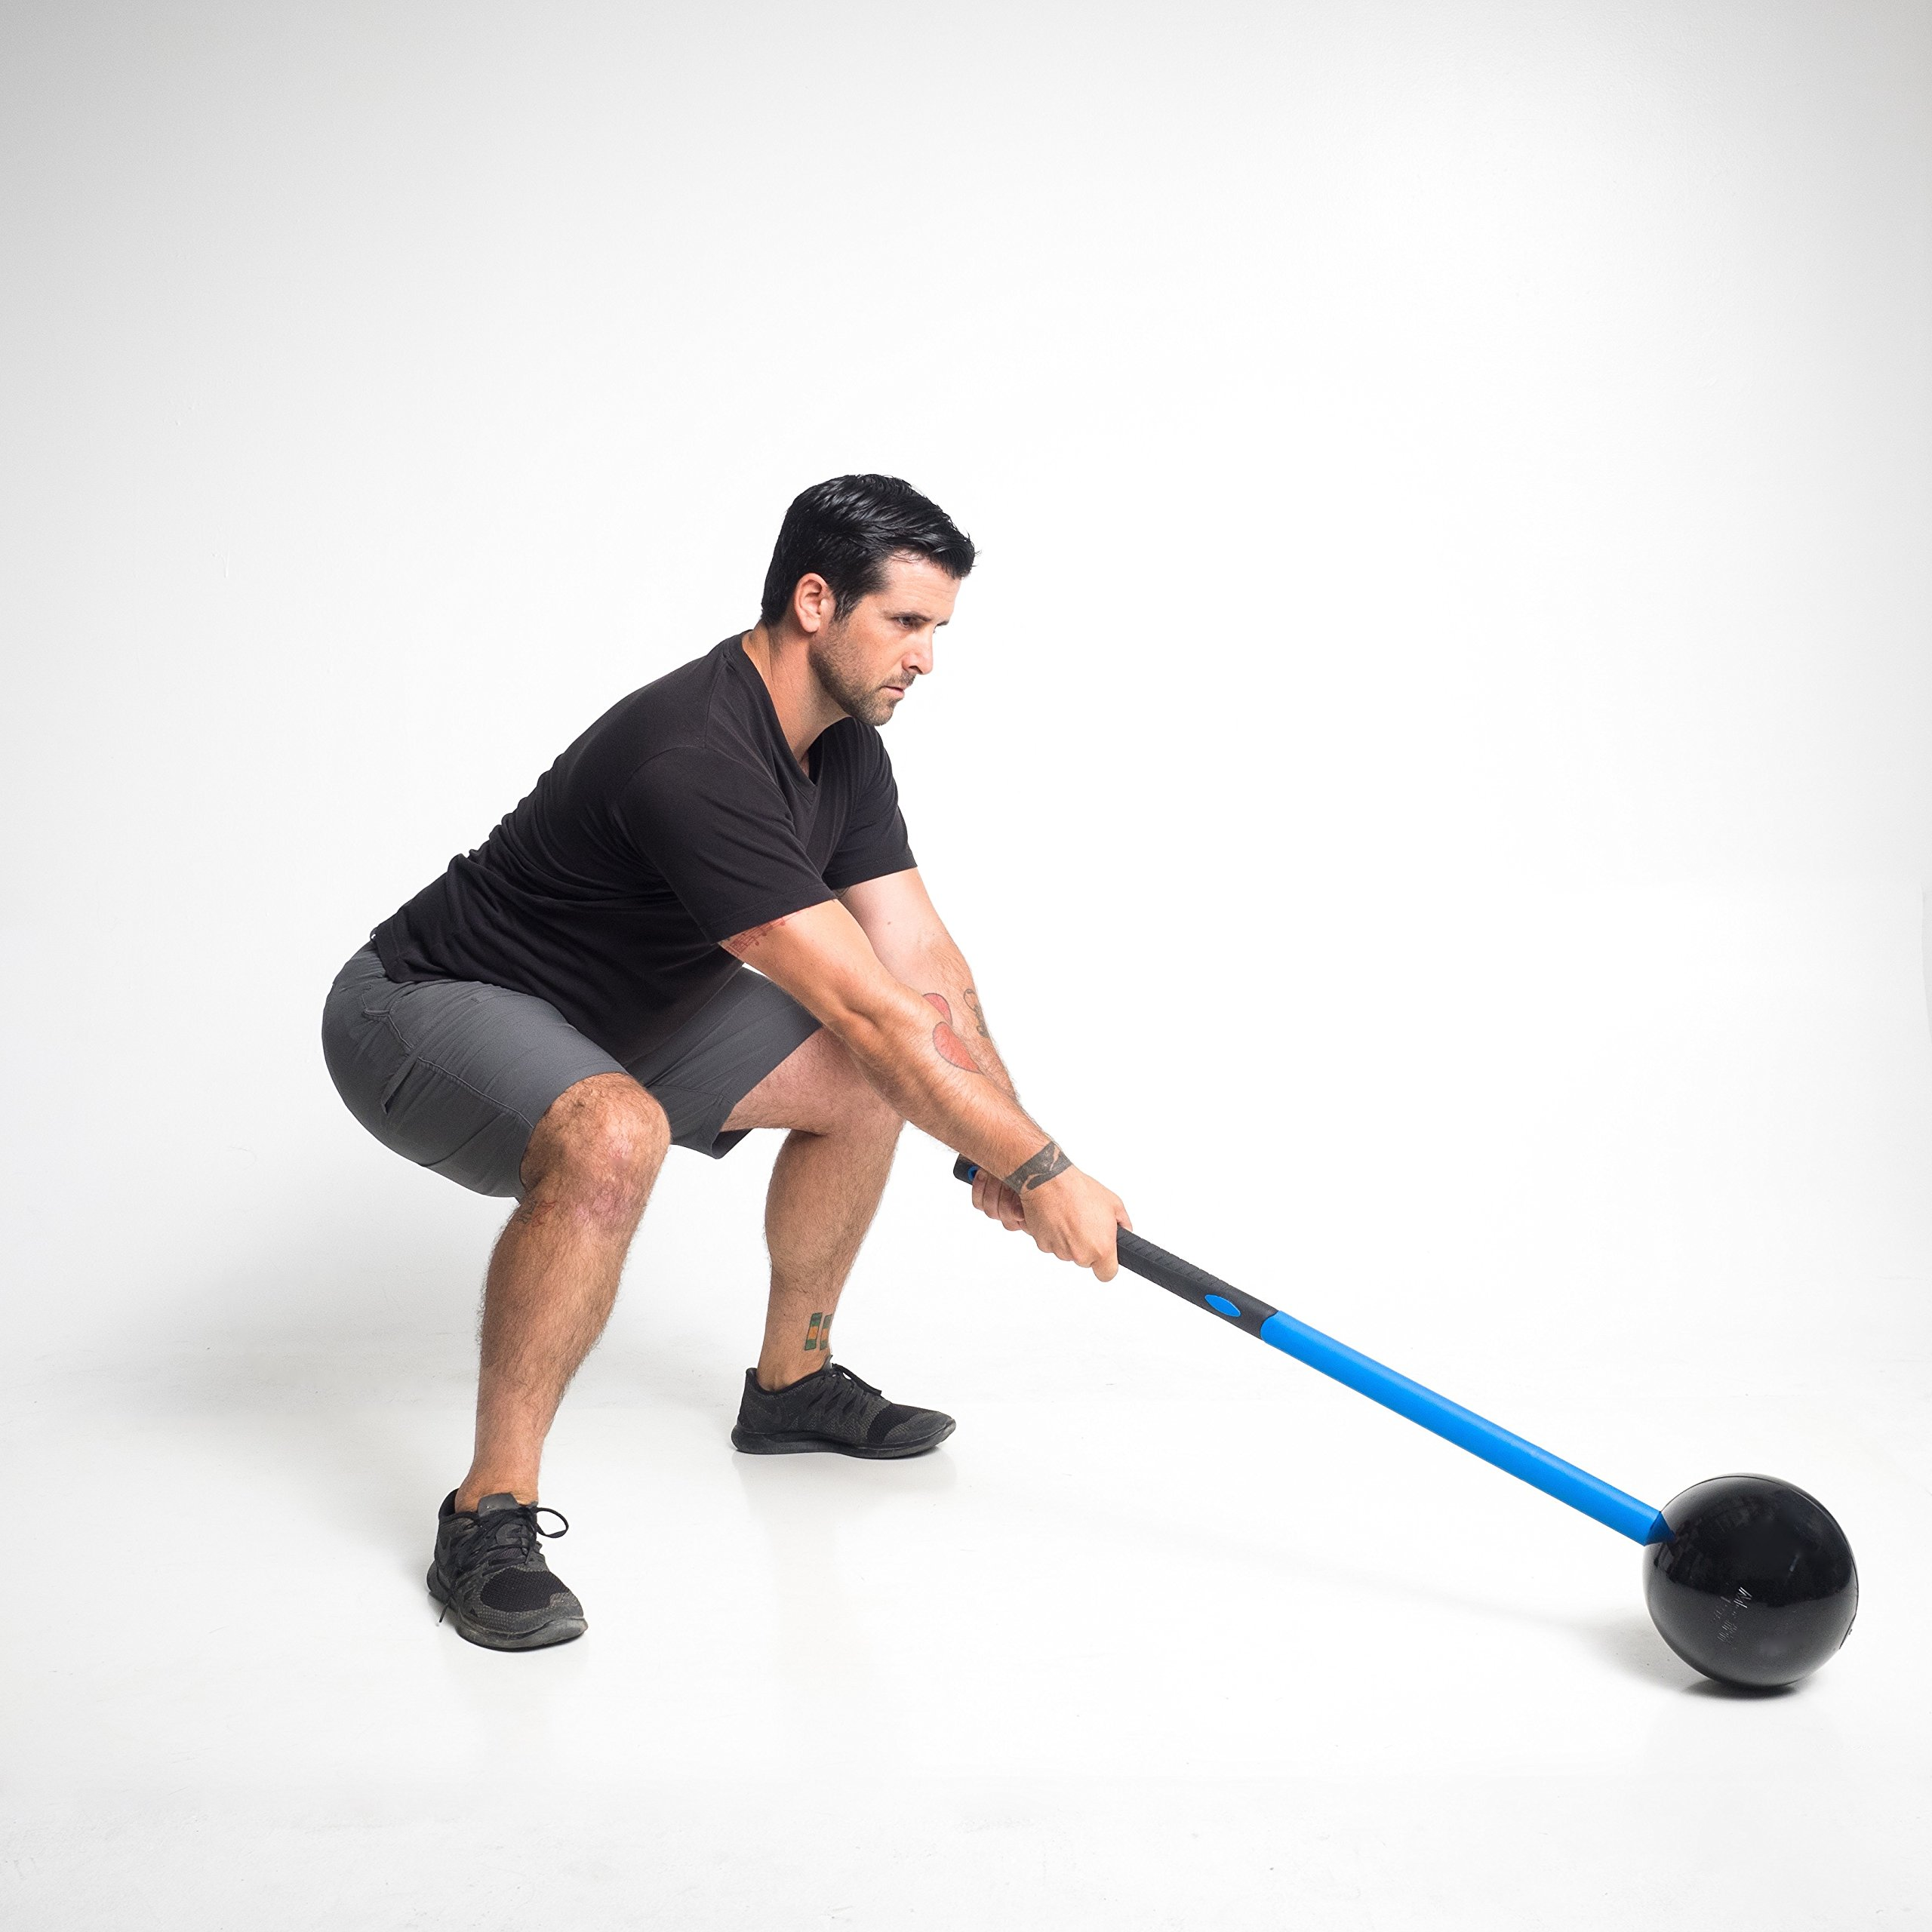 MostFit Core Hammer: Fitness Sledgehammer (8) by MostFit